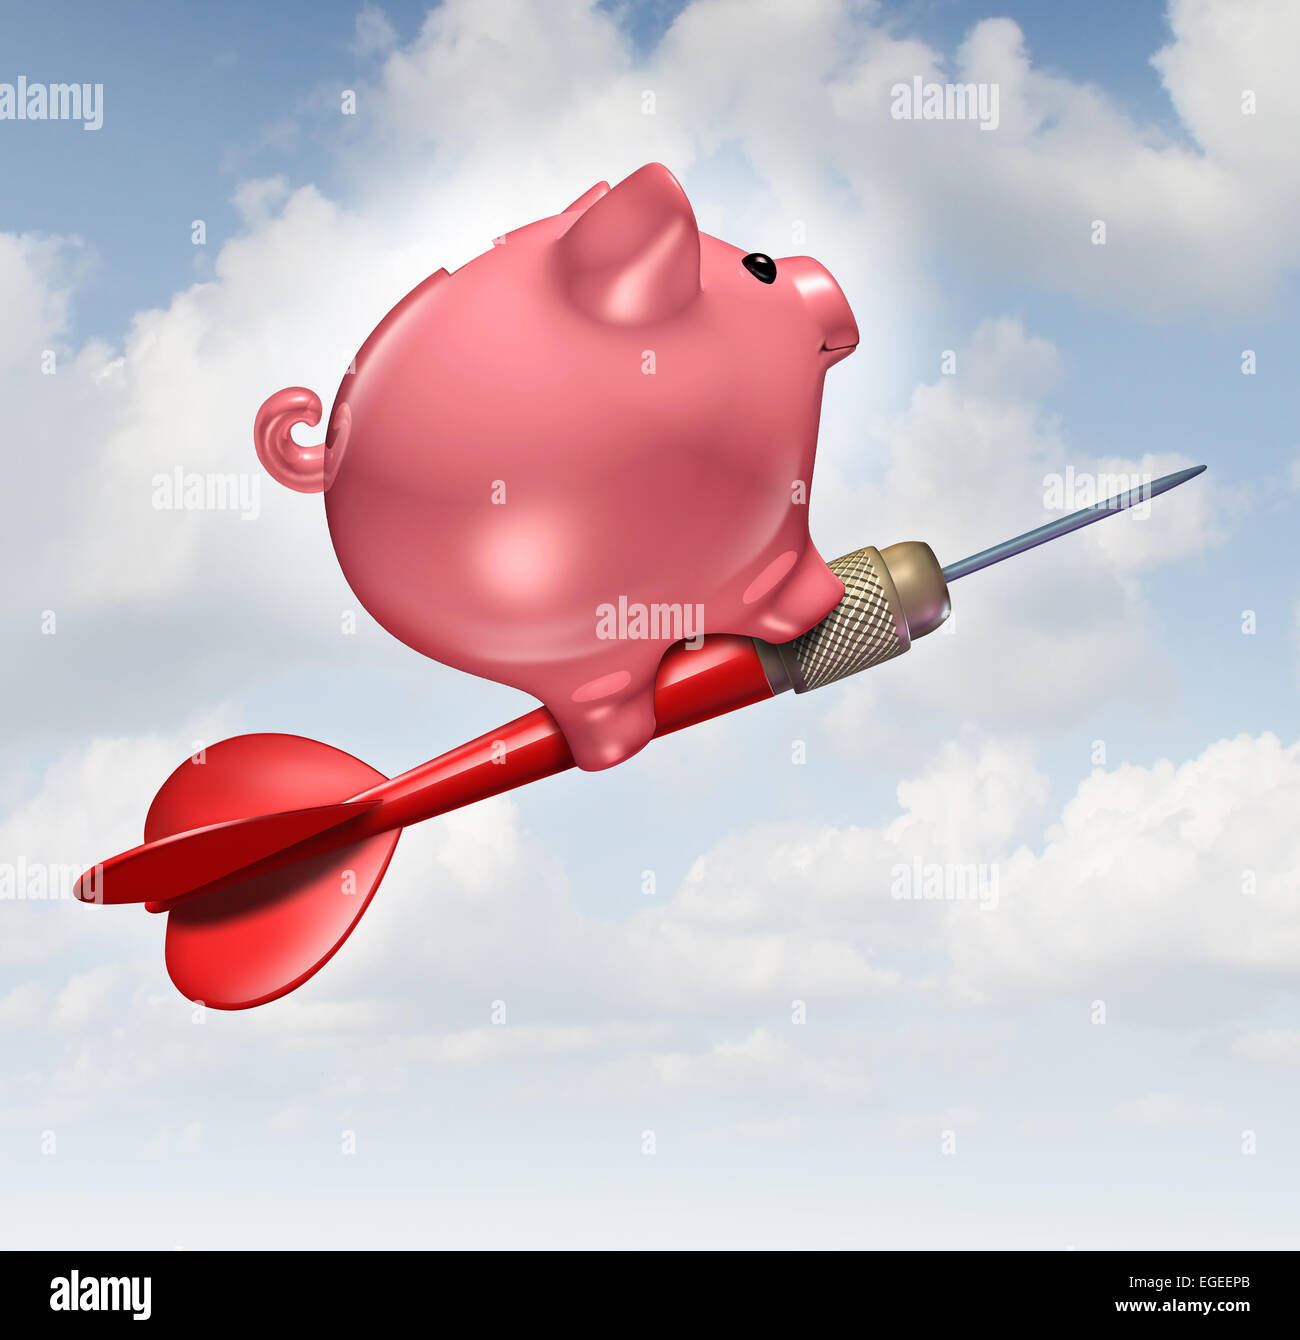 Budget goal and financial advice business concept as a piggybank character riding a red dart as a financial success - Stock Image